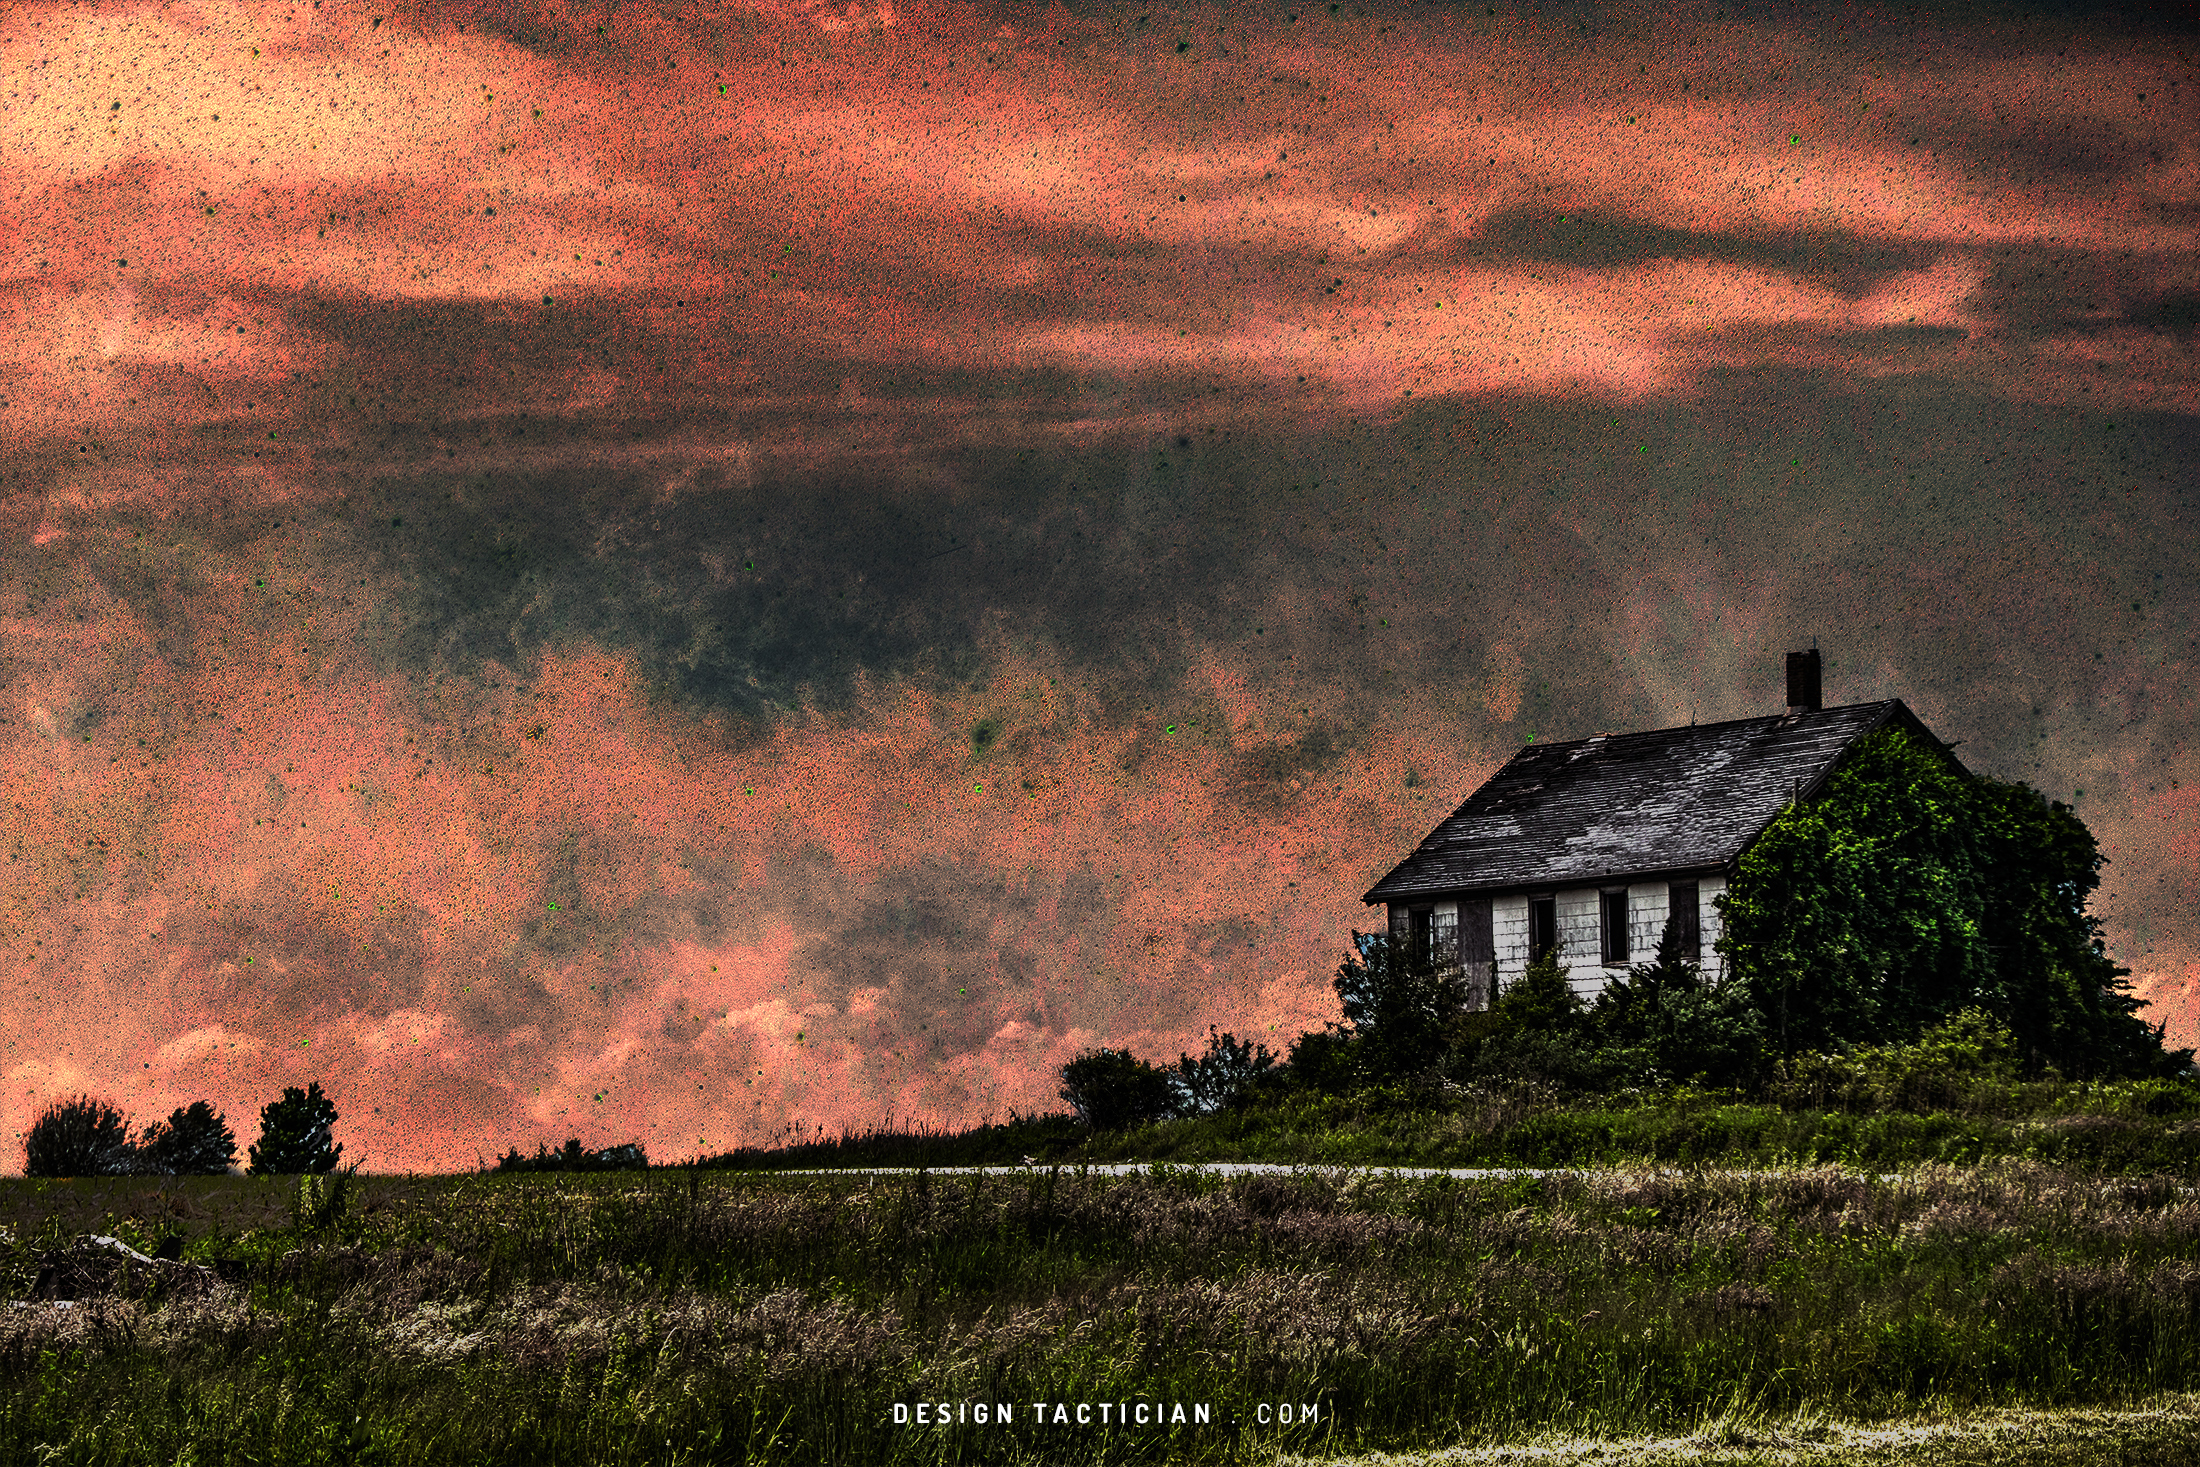 A manipulation using a photo of an abandoned house and the milky way